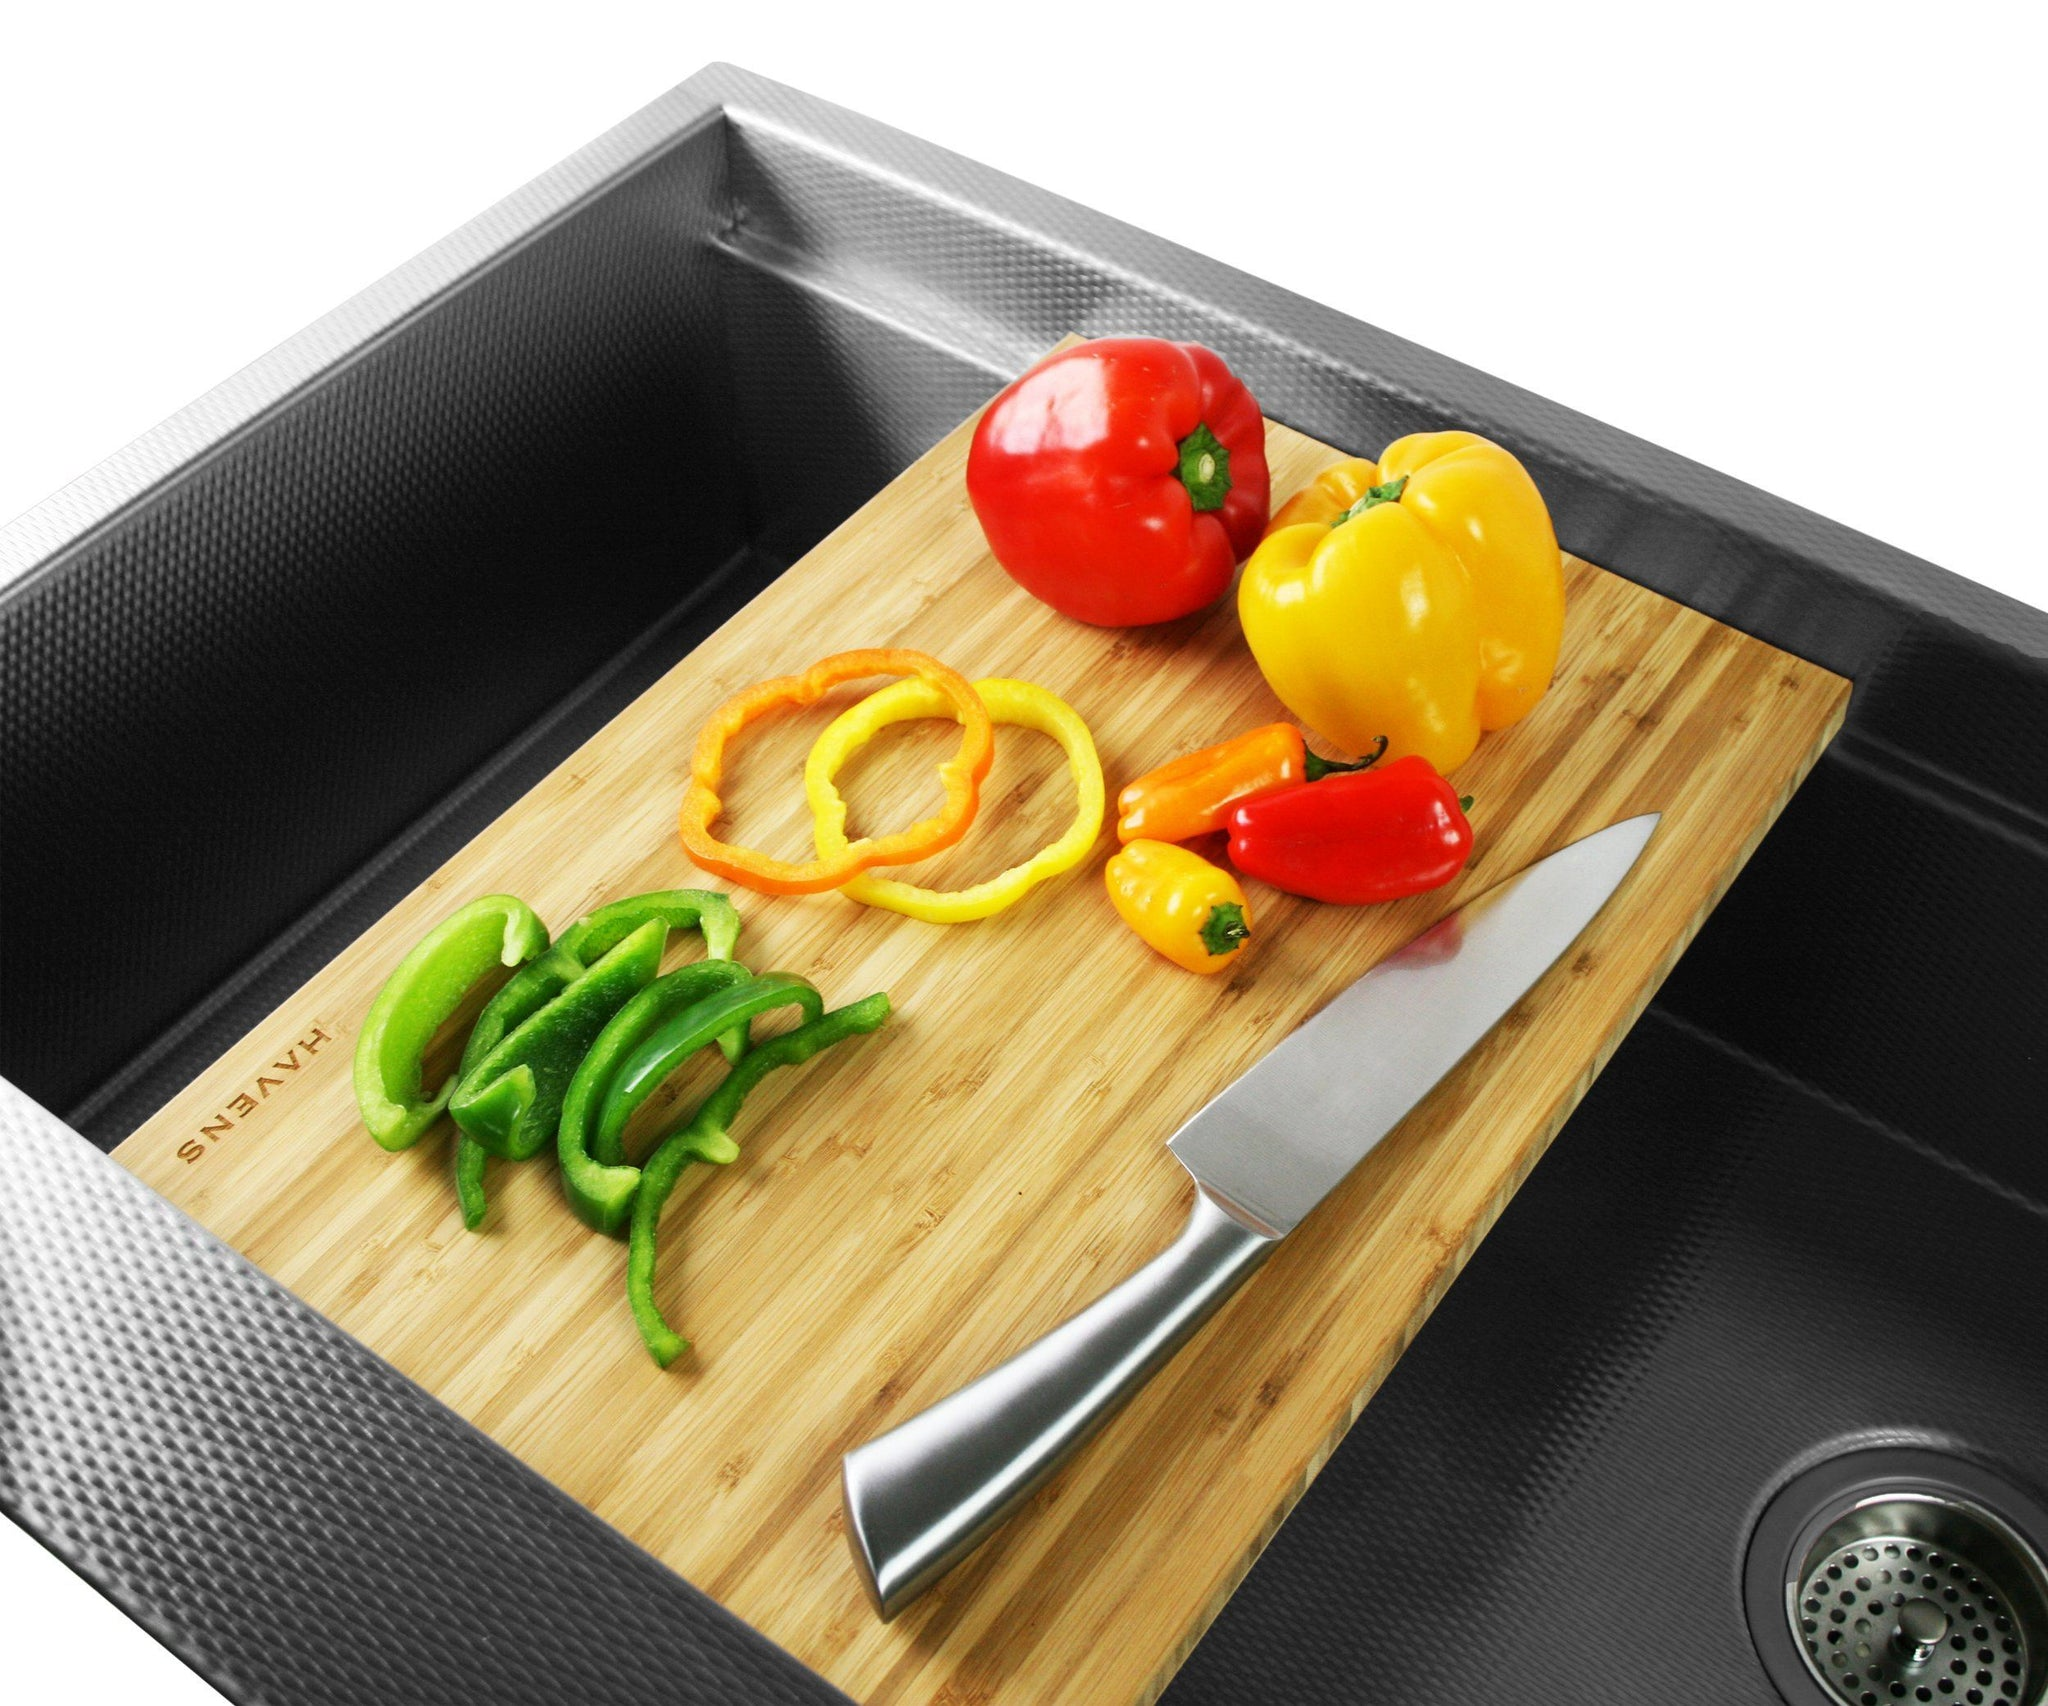 Light bamboo cutting board for stainless steel kitchen sink